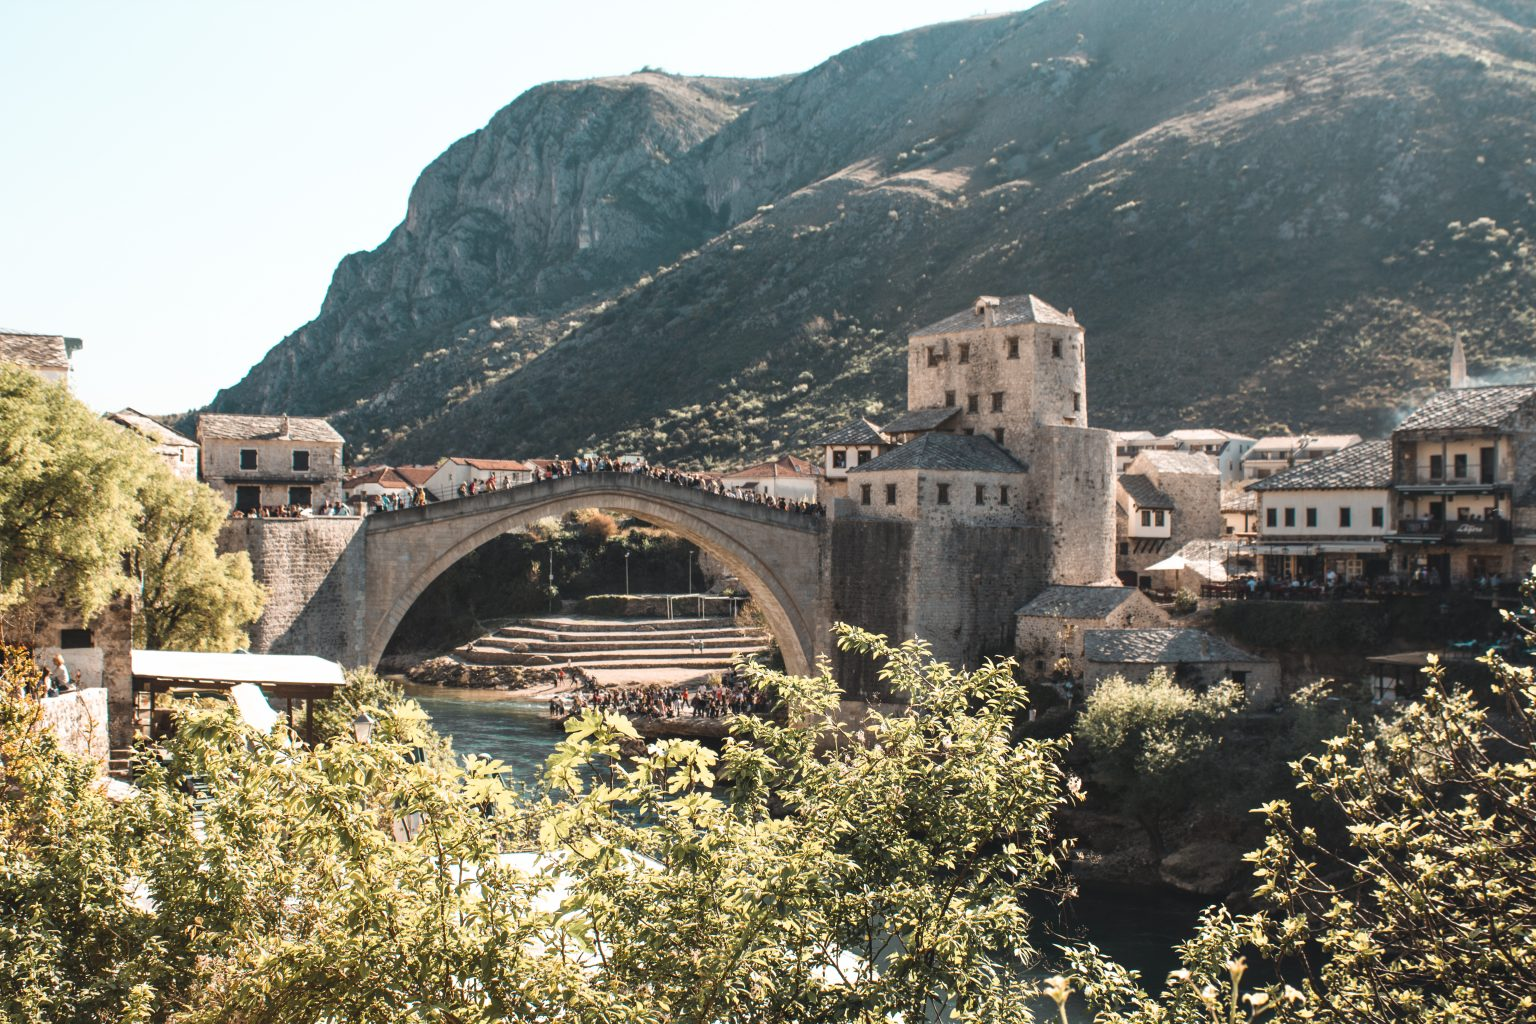 How to get from Mostar to Dubrovnik by bus